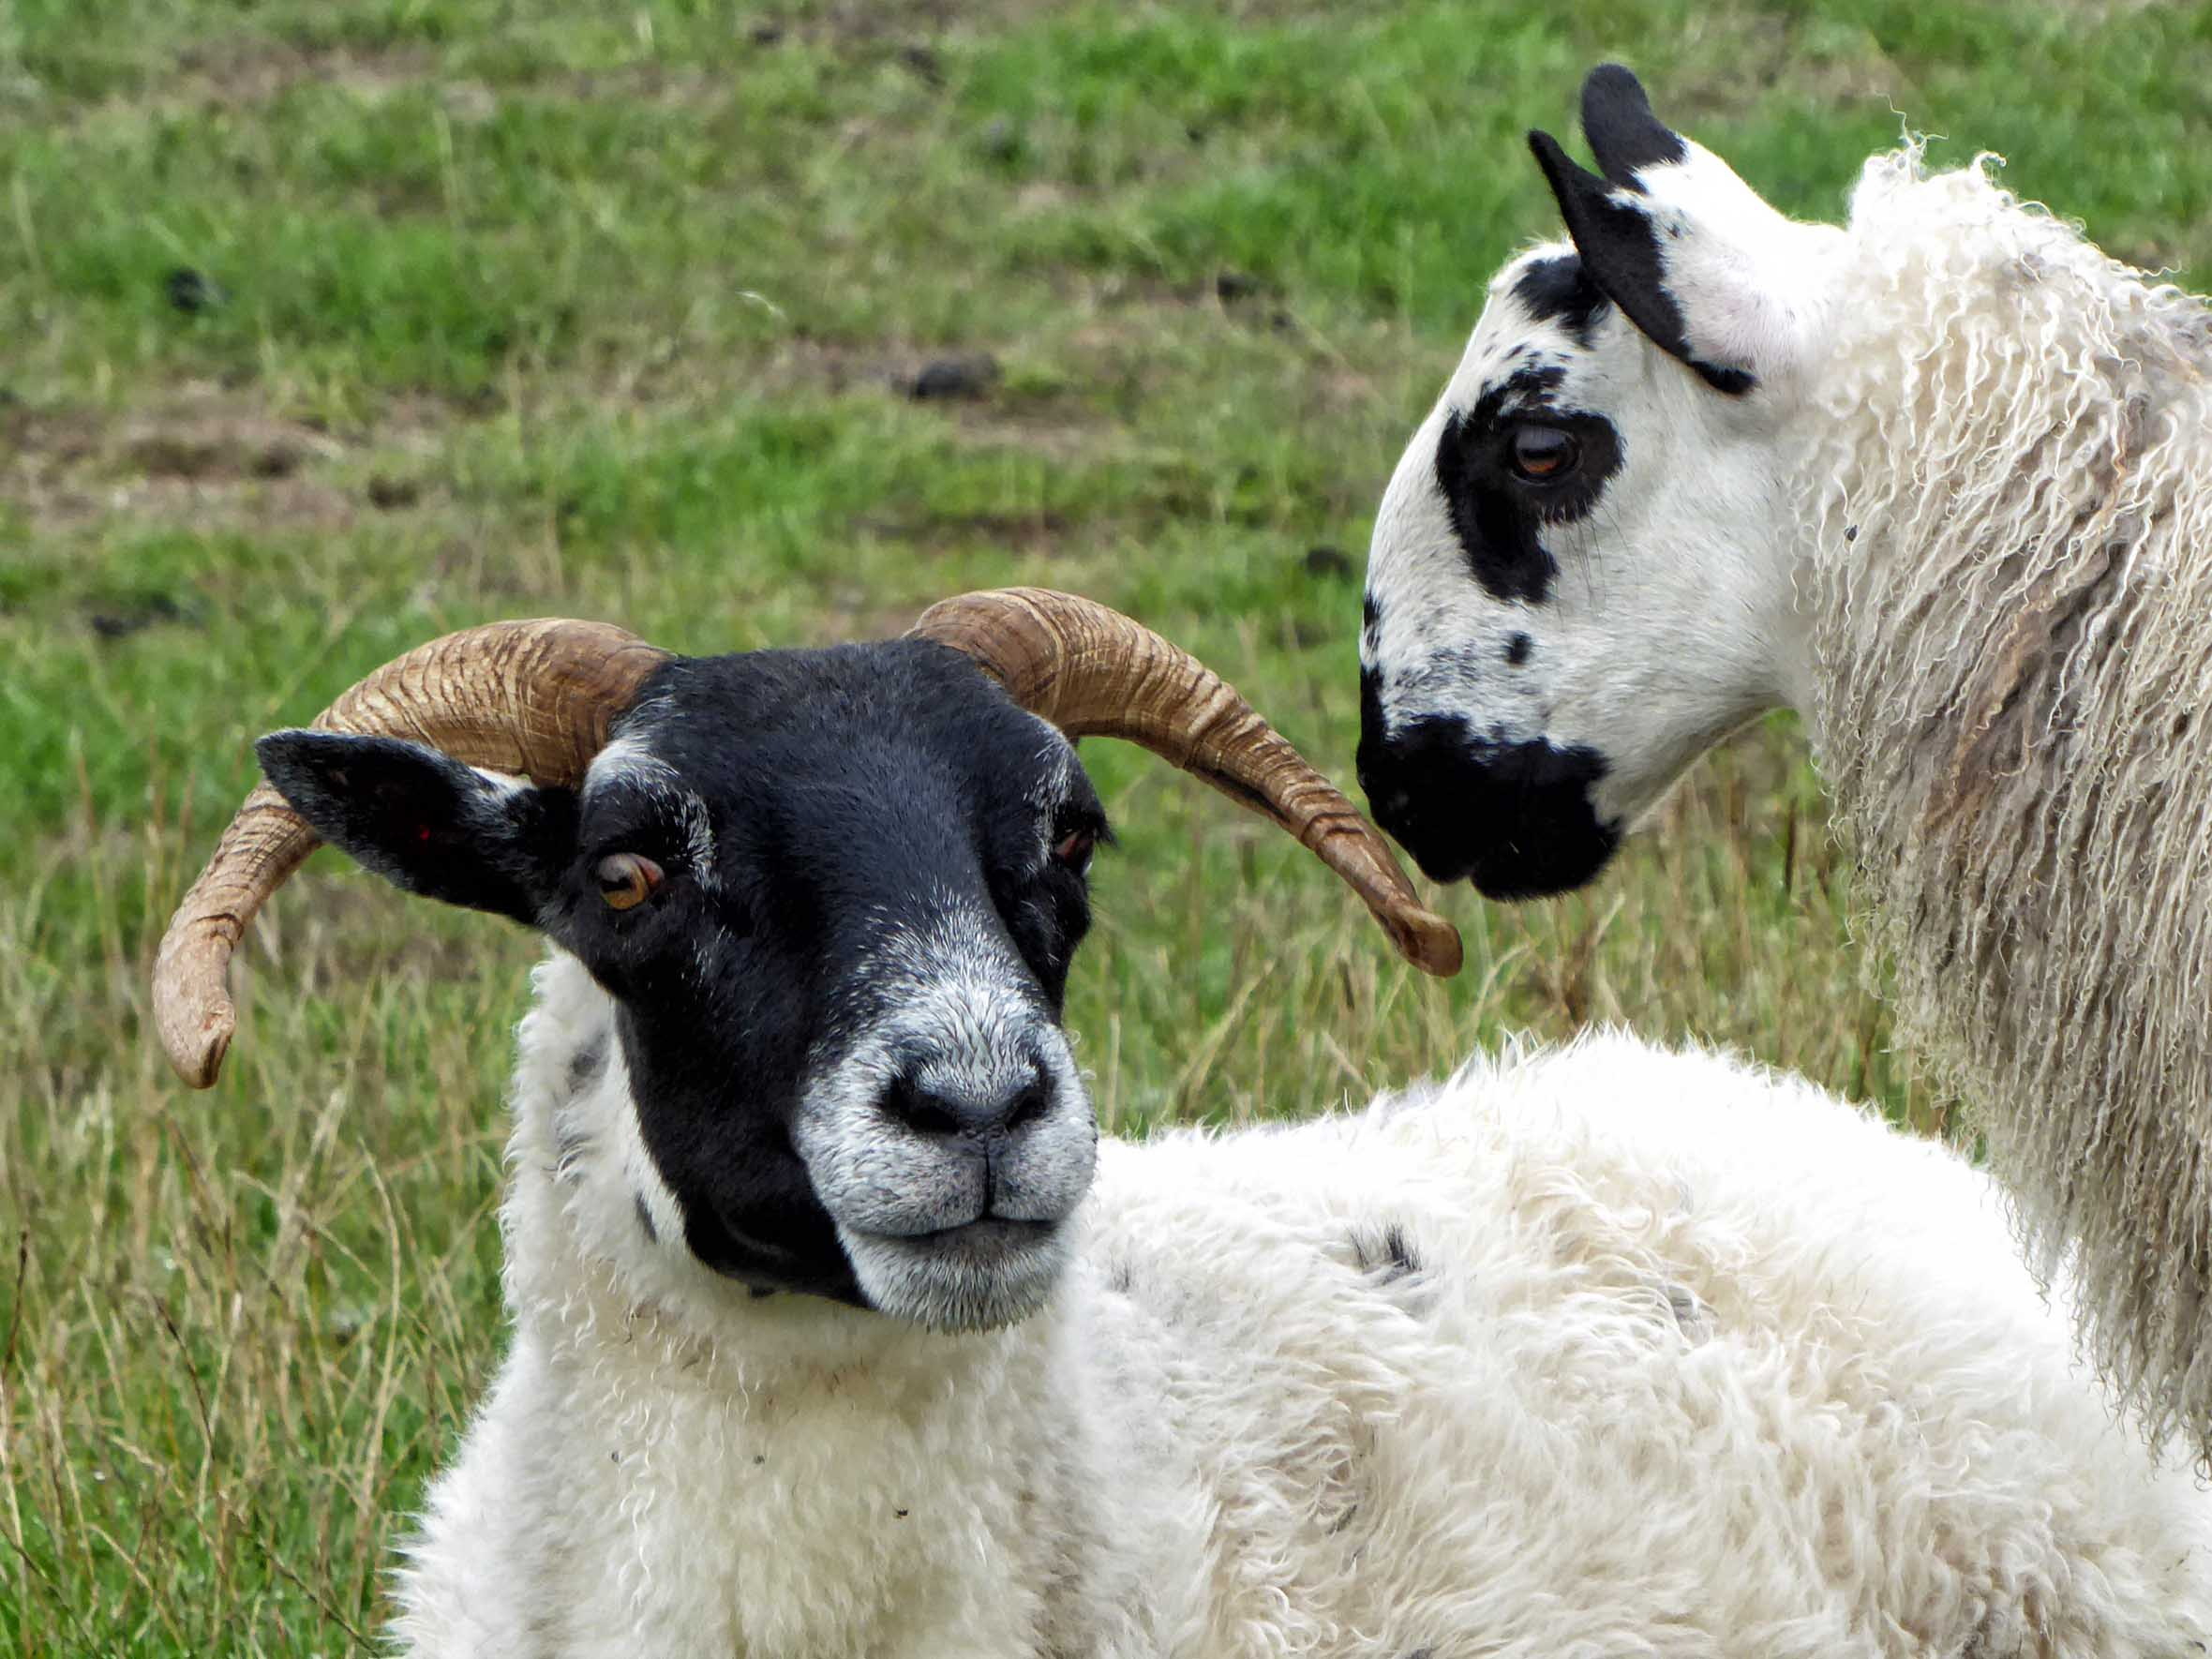 Two sheep, one with horns